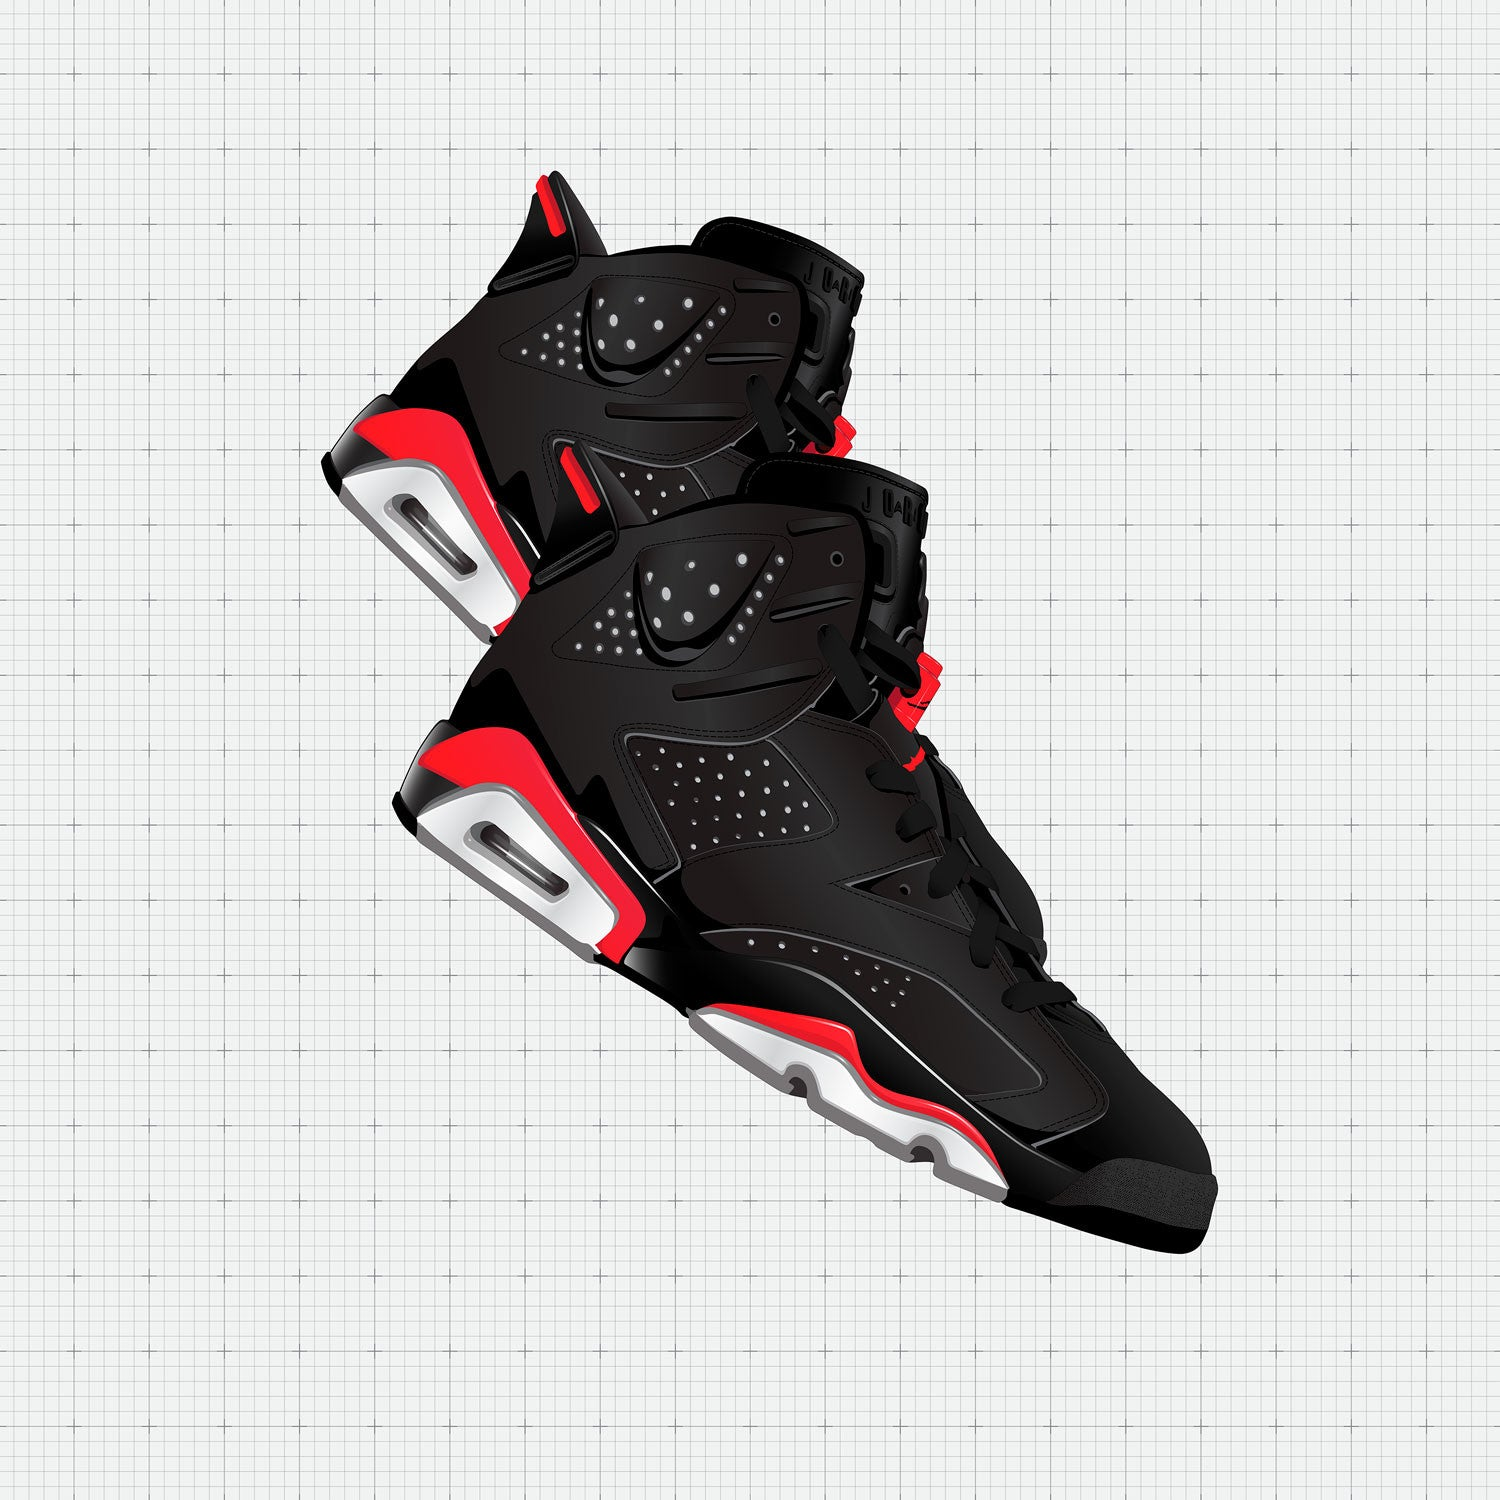 Contemporary Sneaker Art of the Air Jordan 6 Bred